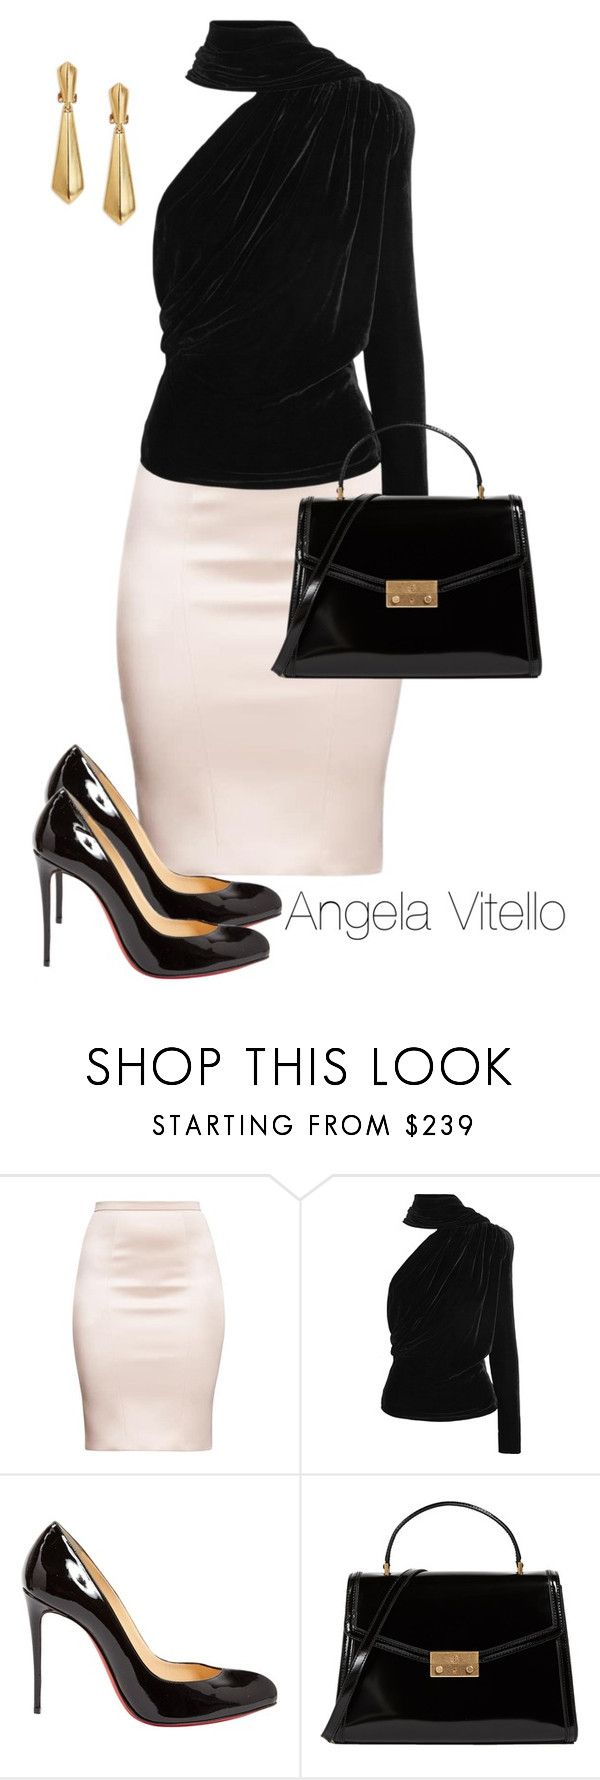 """Untitled #1030"" by angela-vitello on Polyvore featuring Gareth Pugh, Christian Louboutin, Tory Burch and Oscar de la Renta"